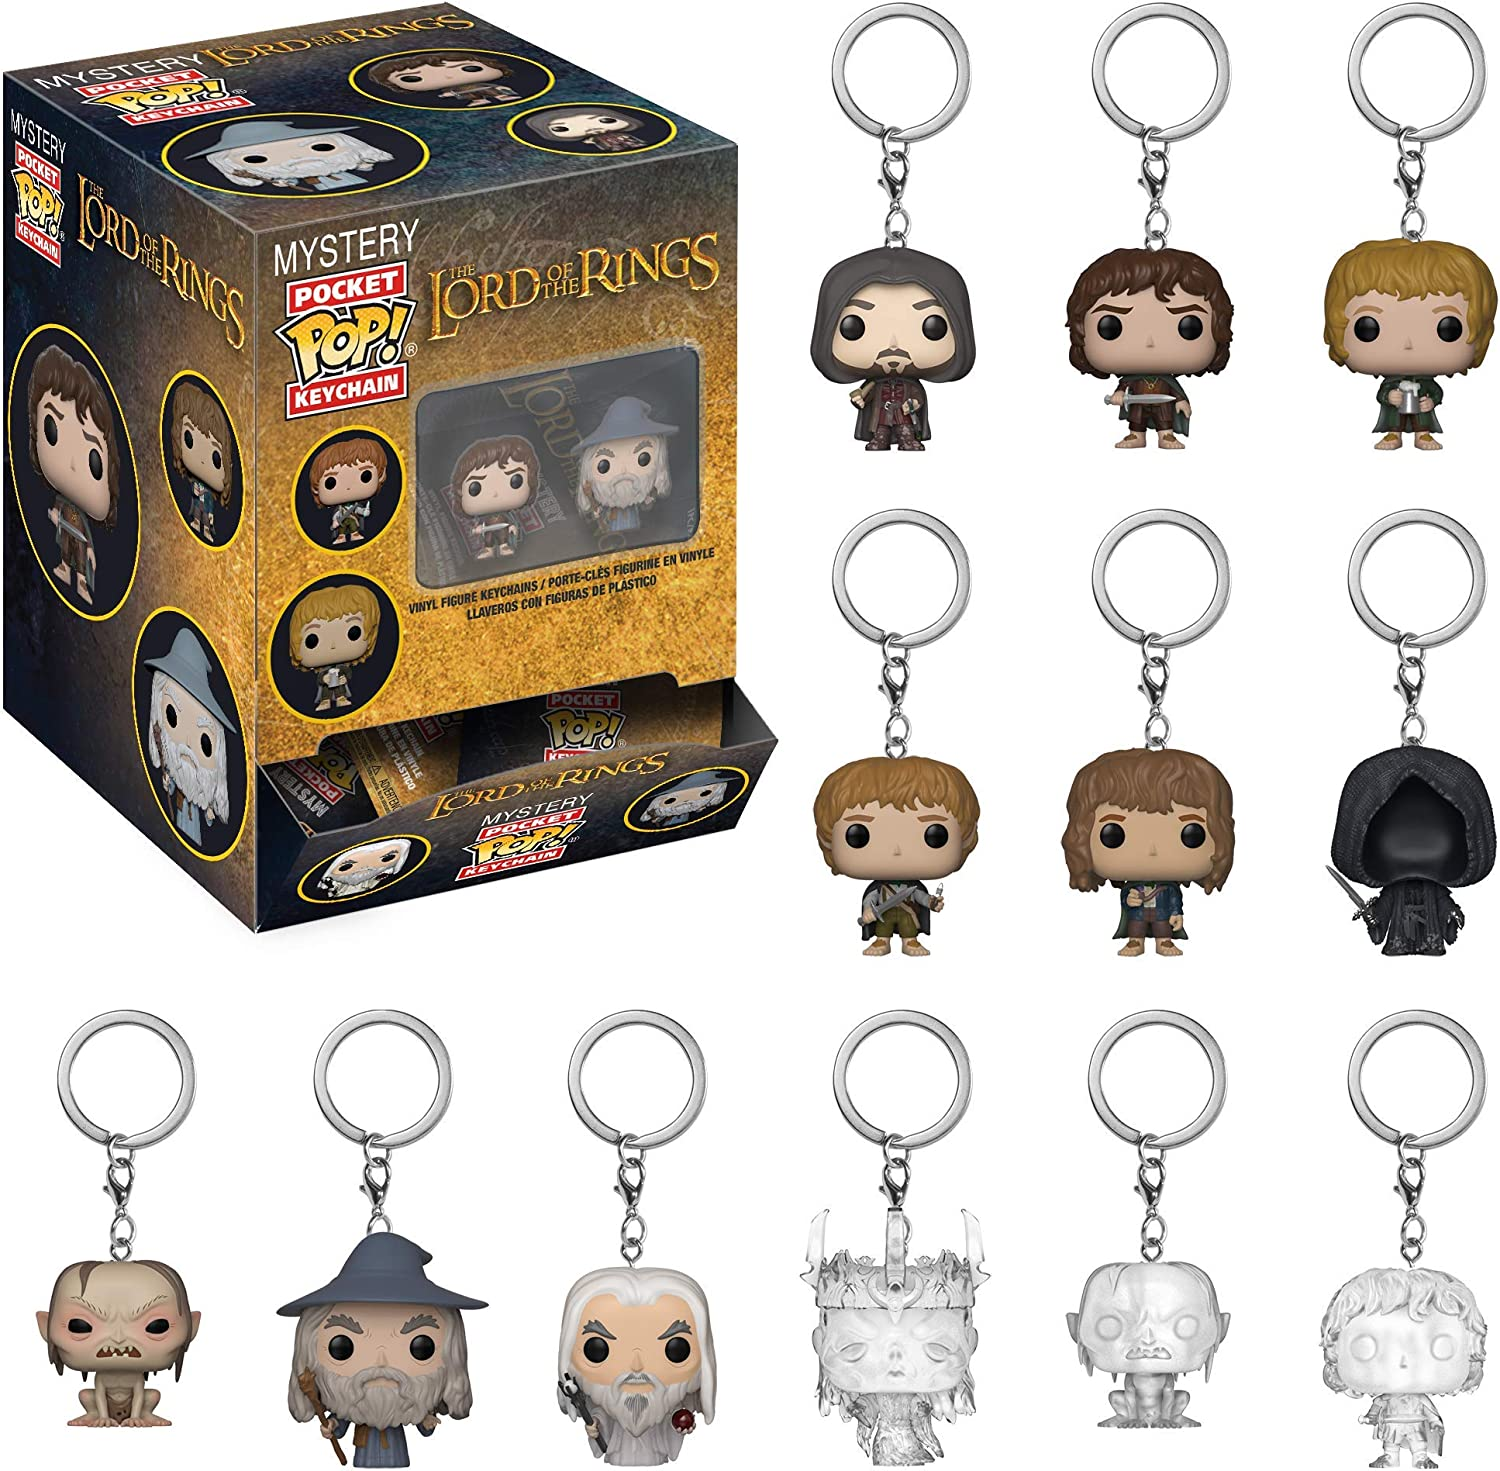 THE LORD OF THE RINGS FUNKO POP MYSTERY KEYCHAIN POCKET 1 PERSONAGGIO A SORPRESA